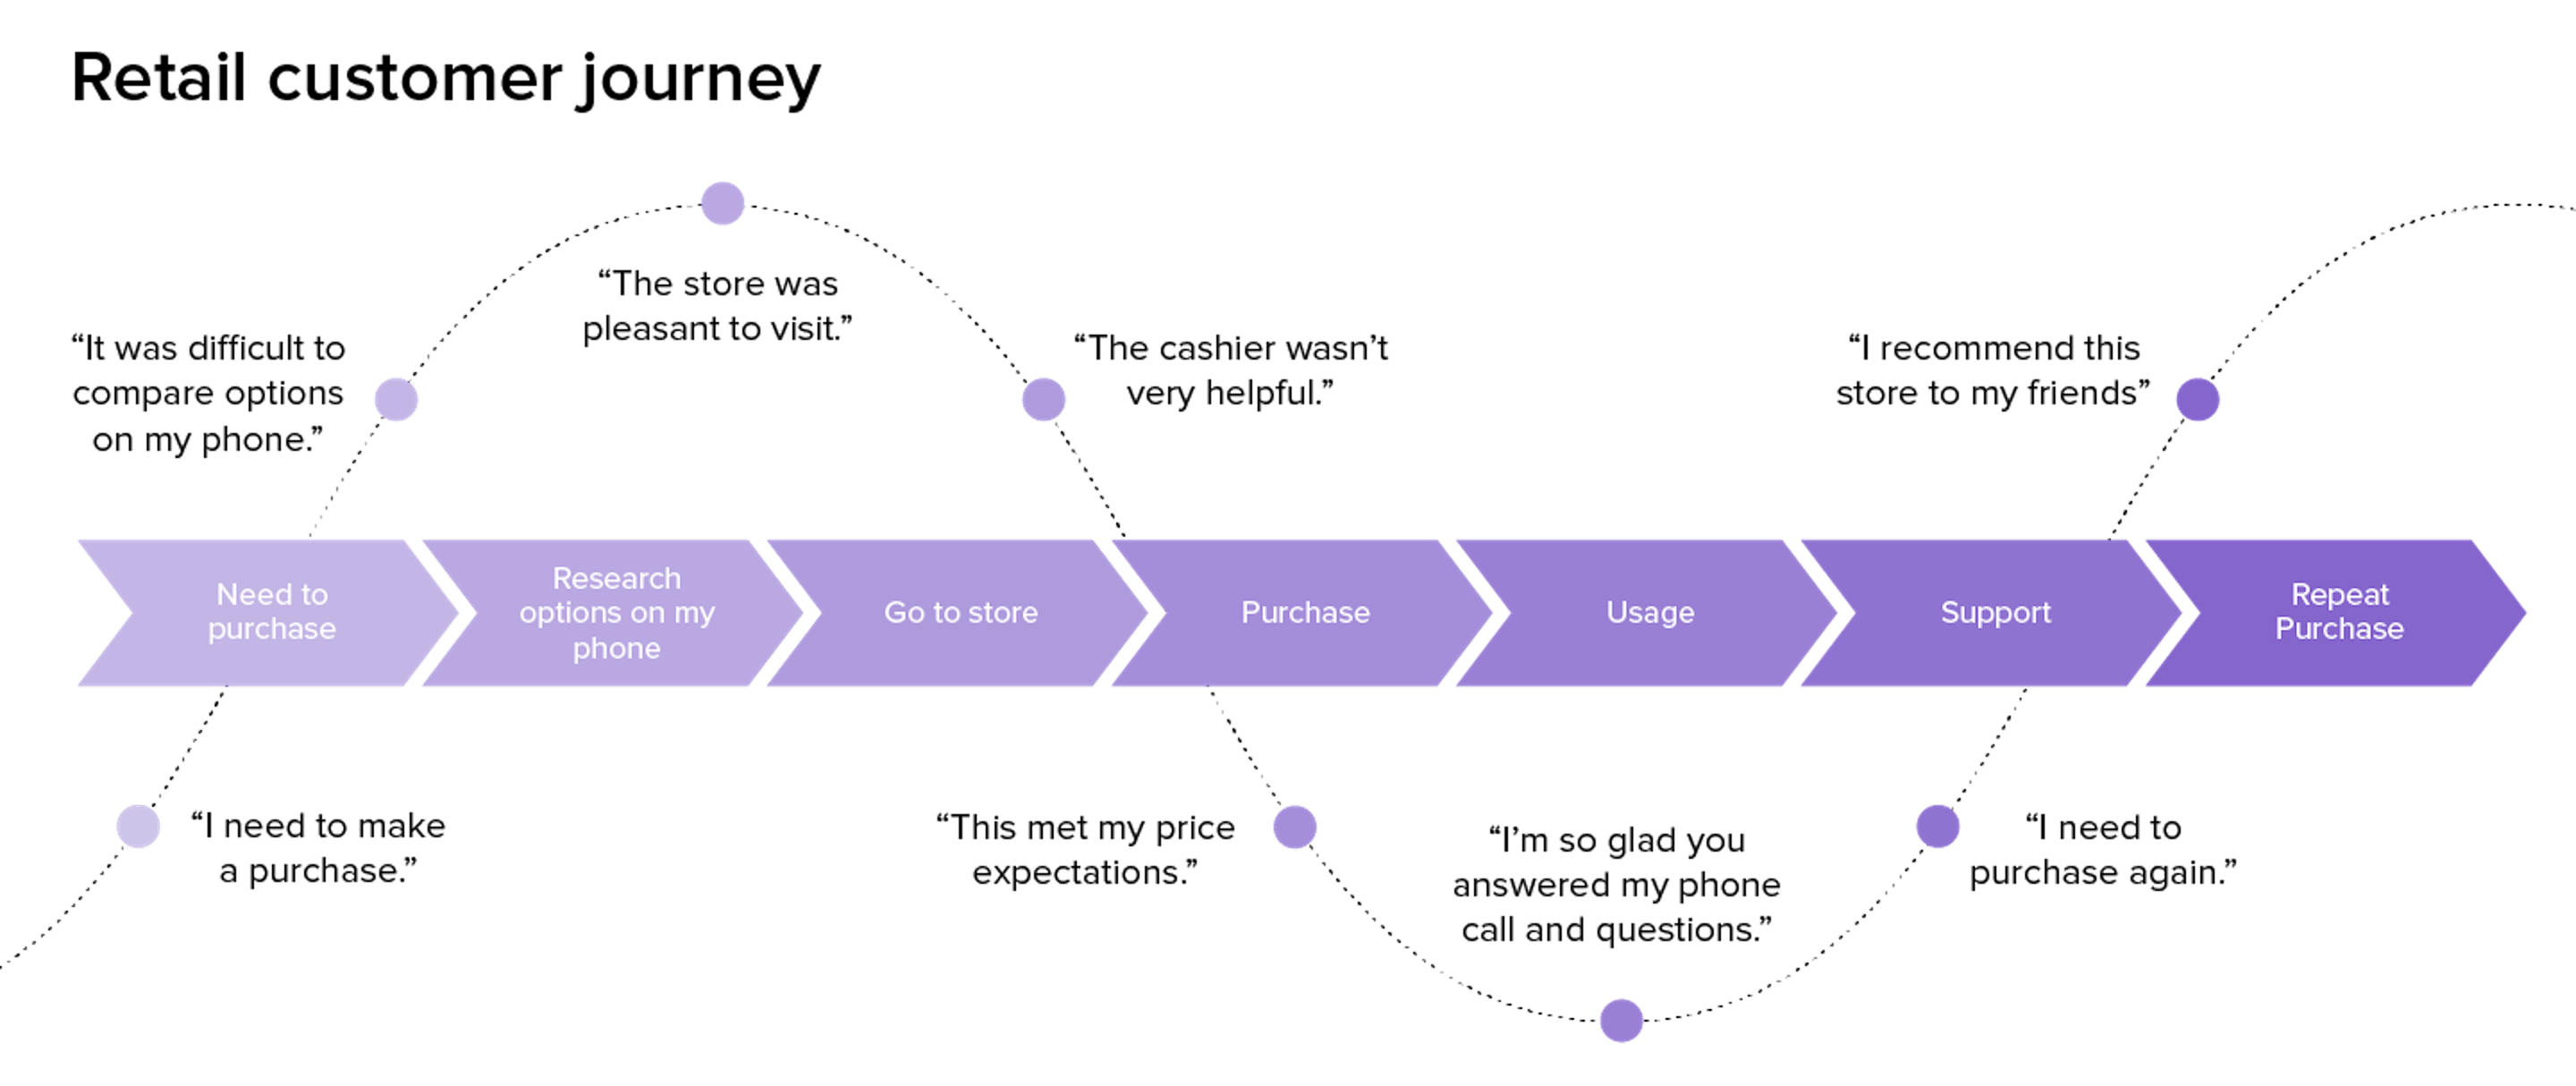 an illustration of the retail customer journey